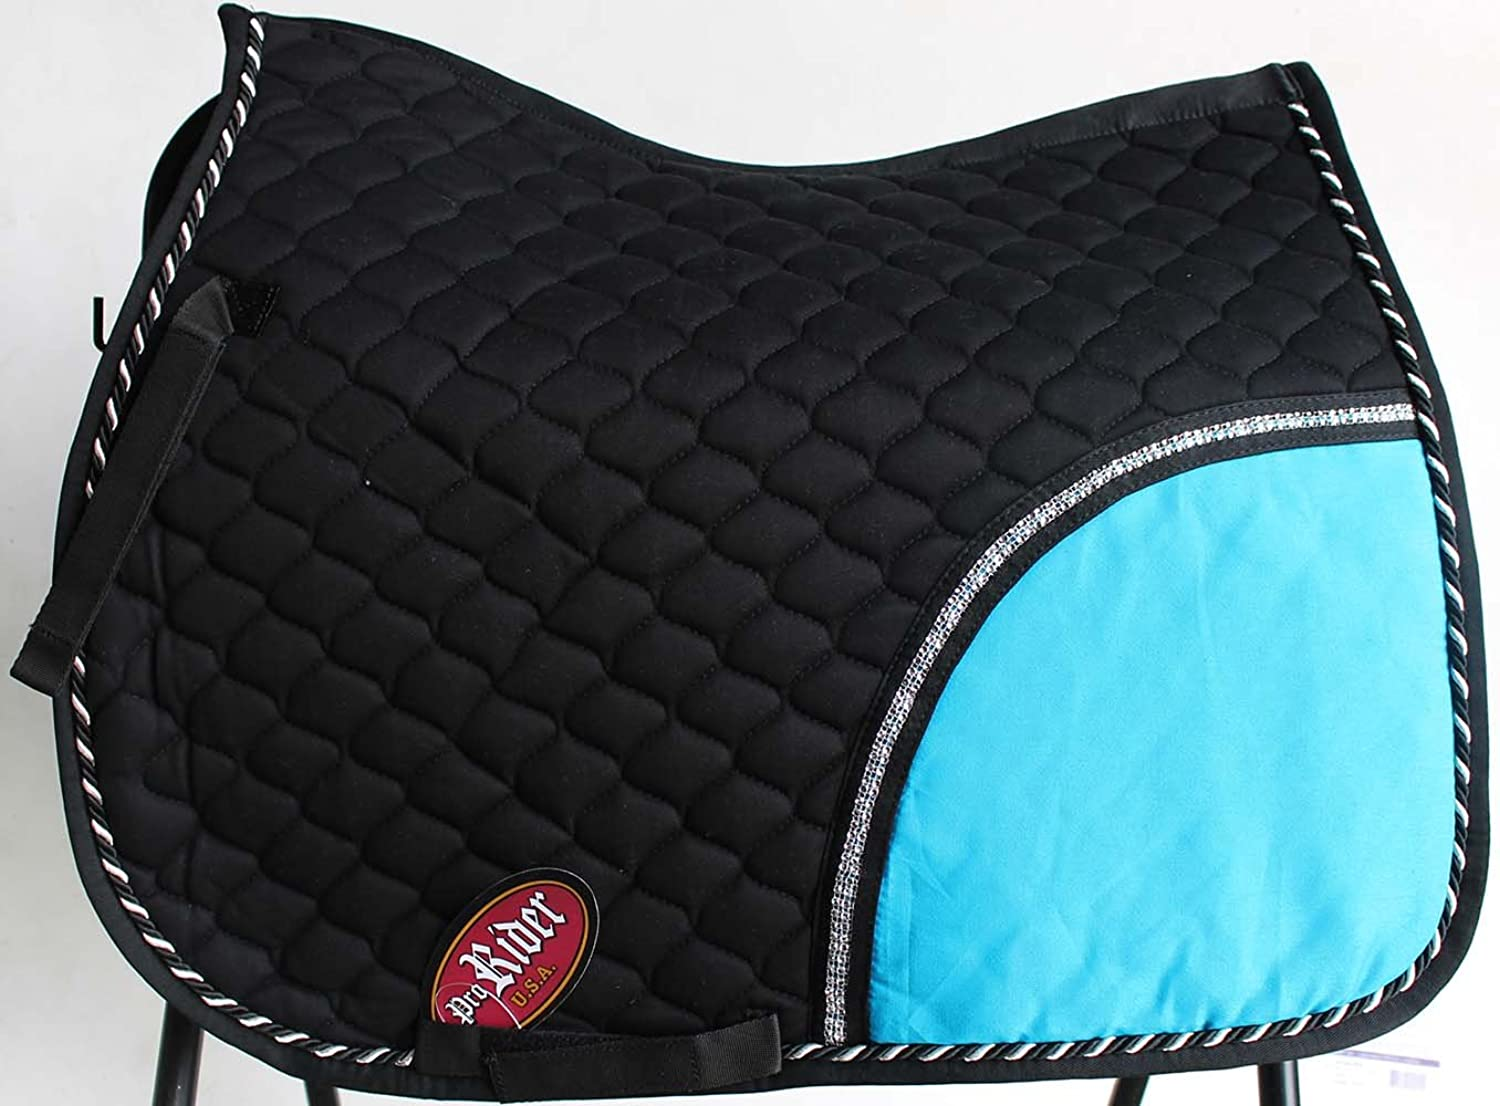 St. Charles Horse All Purpose Show Cotton Quilted English Saddle PAD Trail Turquoise 72F01R